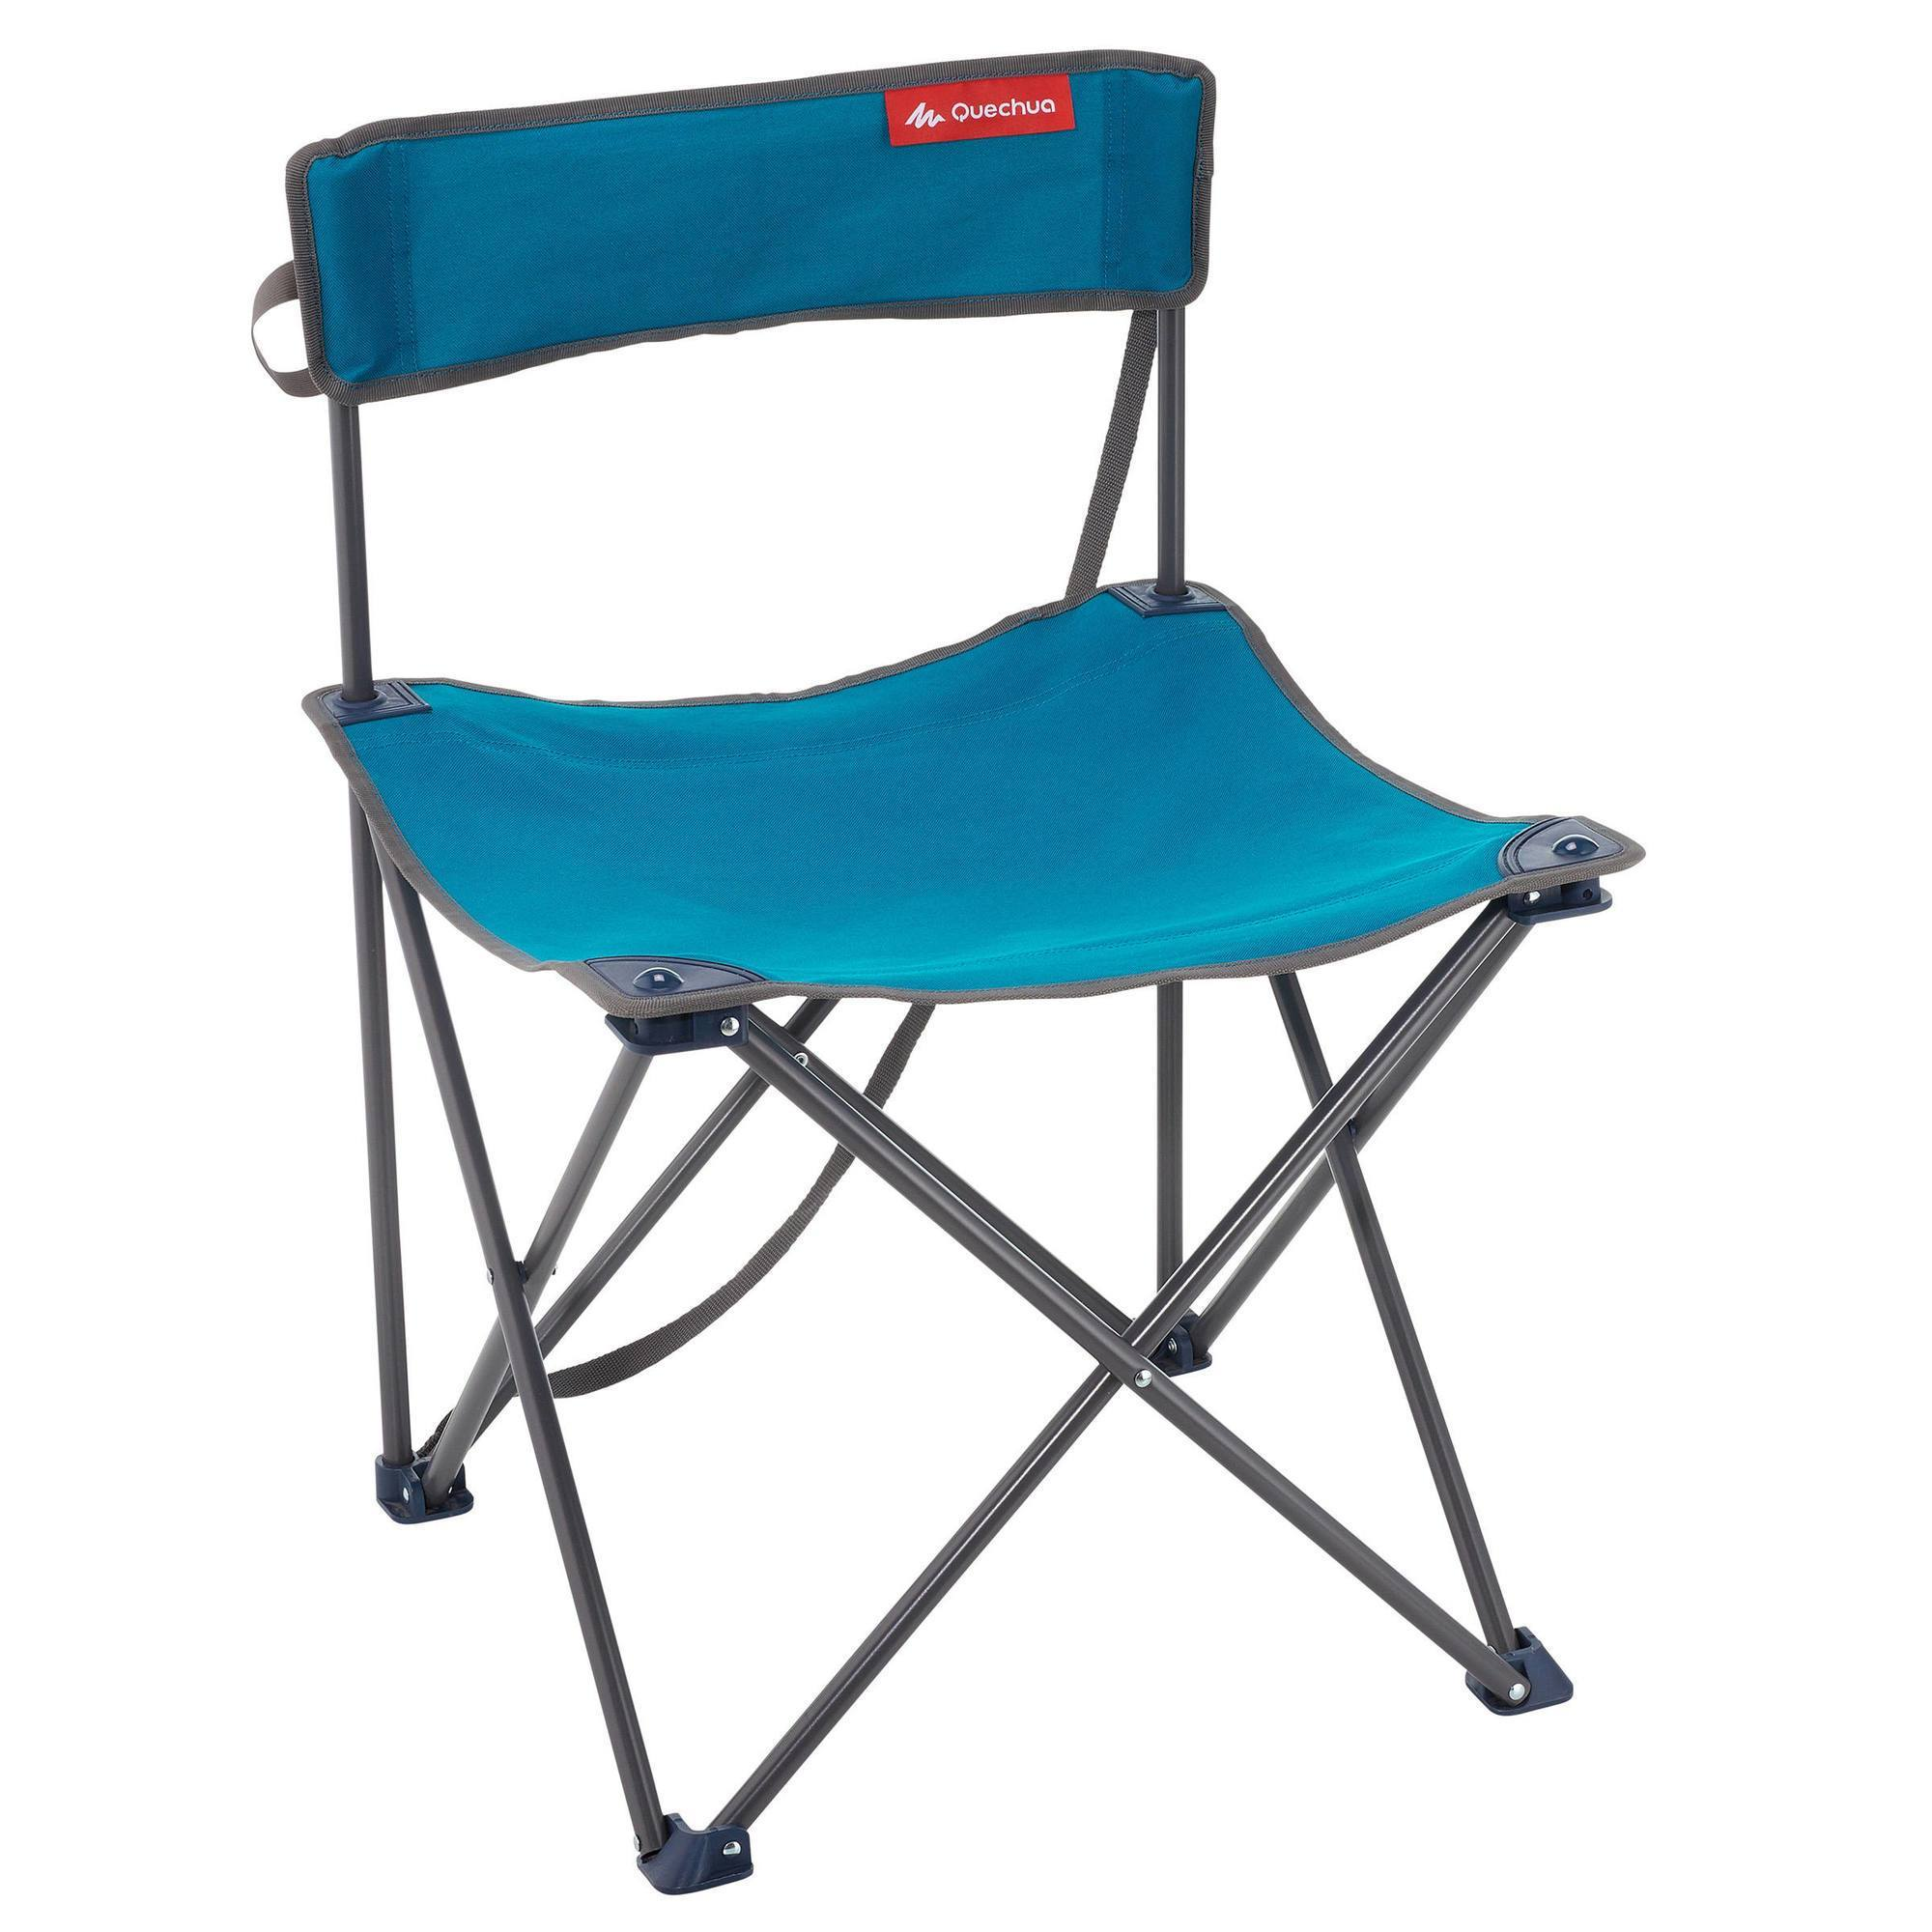 Chaise de camping clubs collectivit s decathlon pro for Chaise de camping